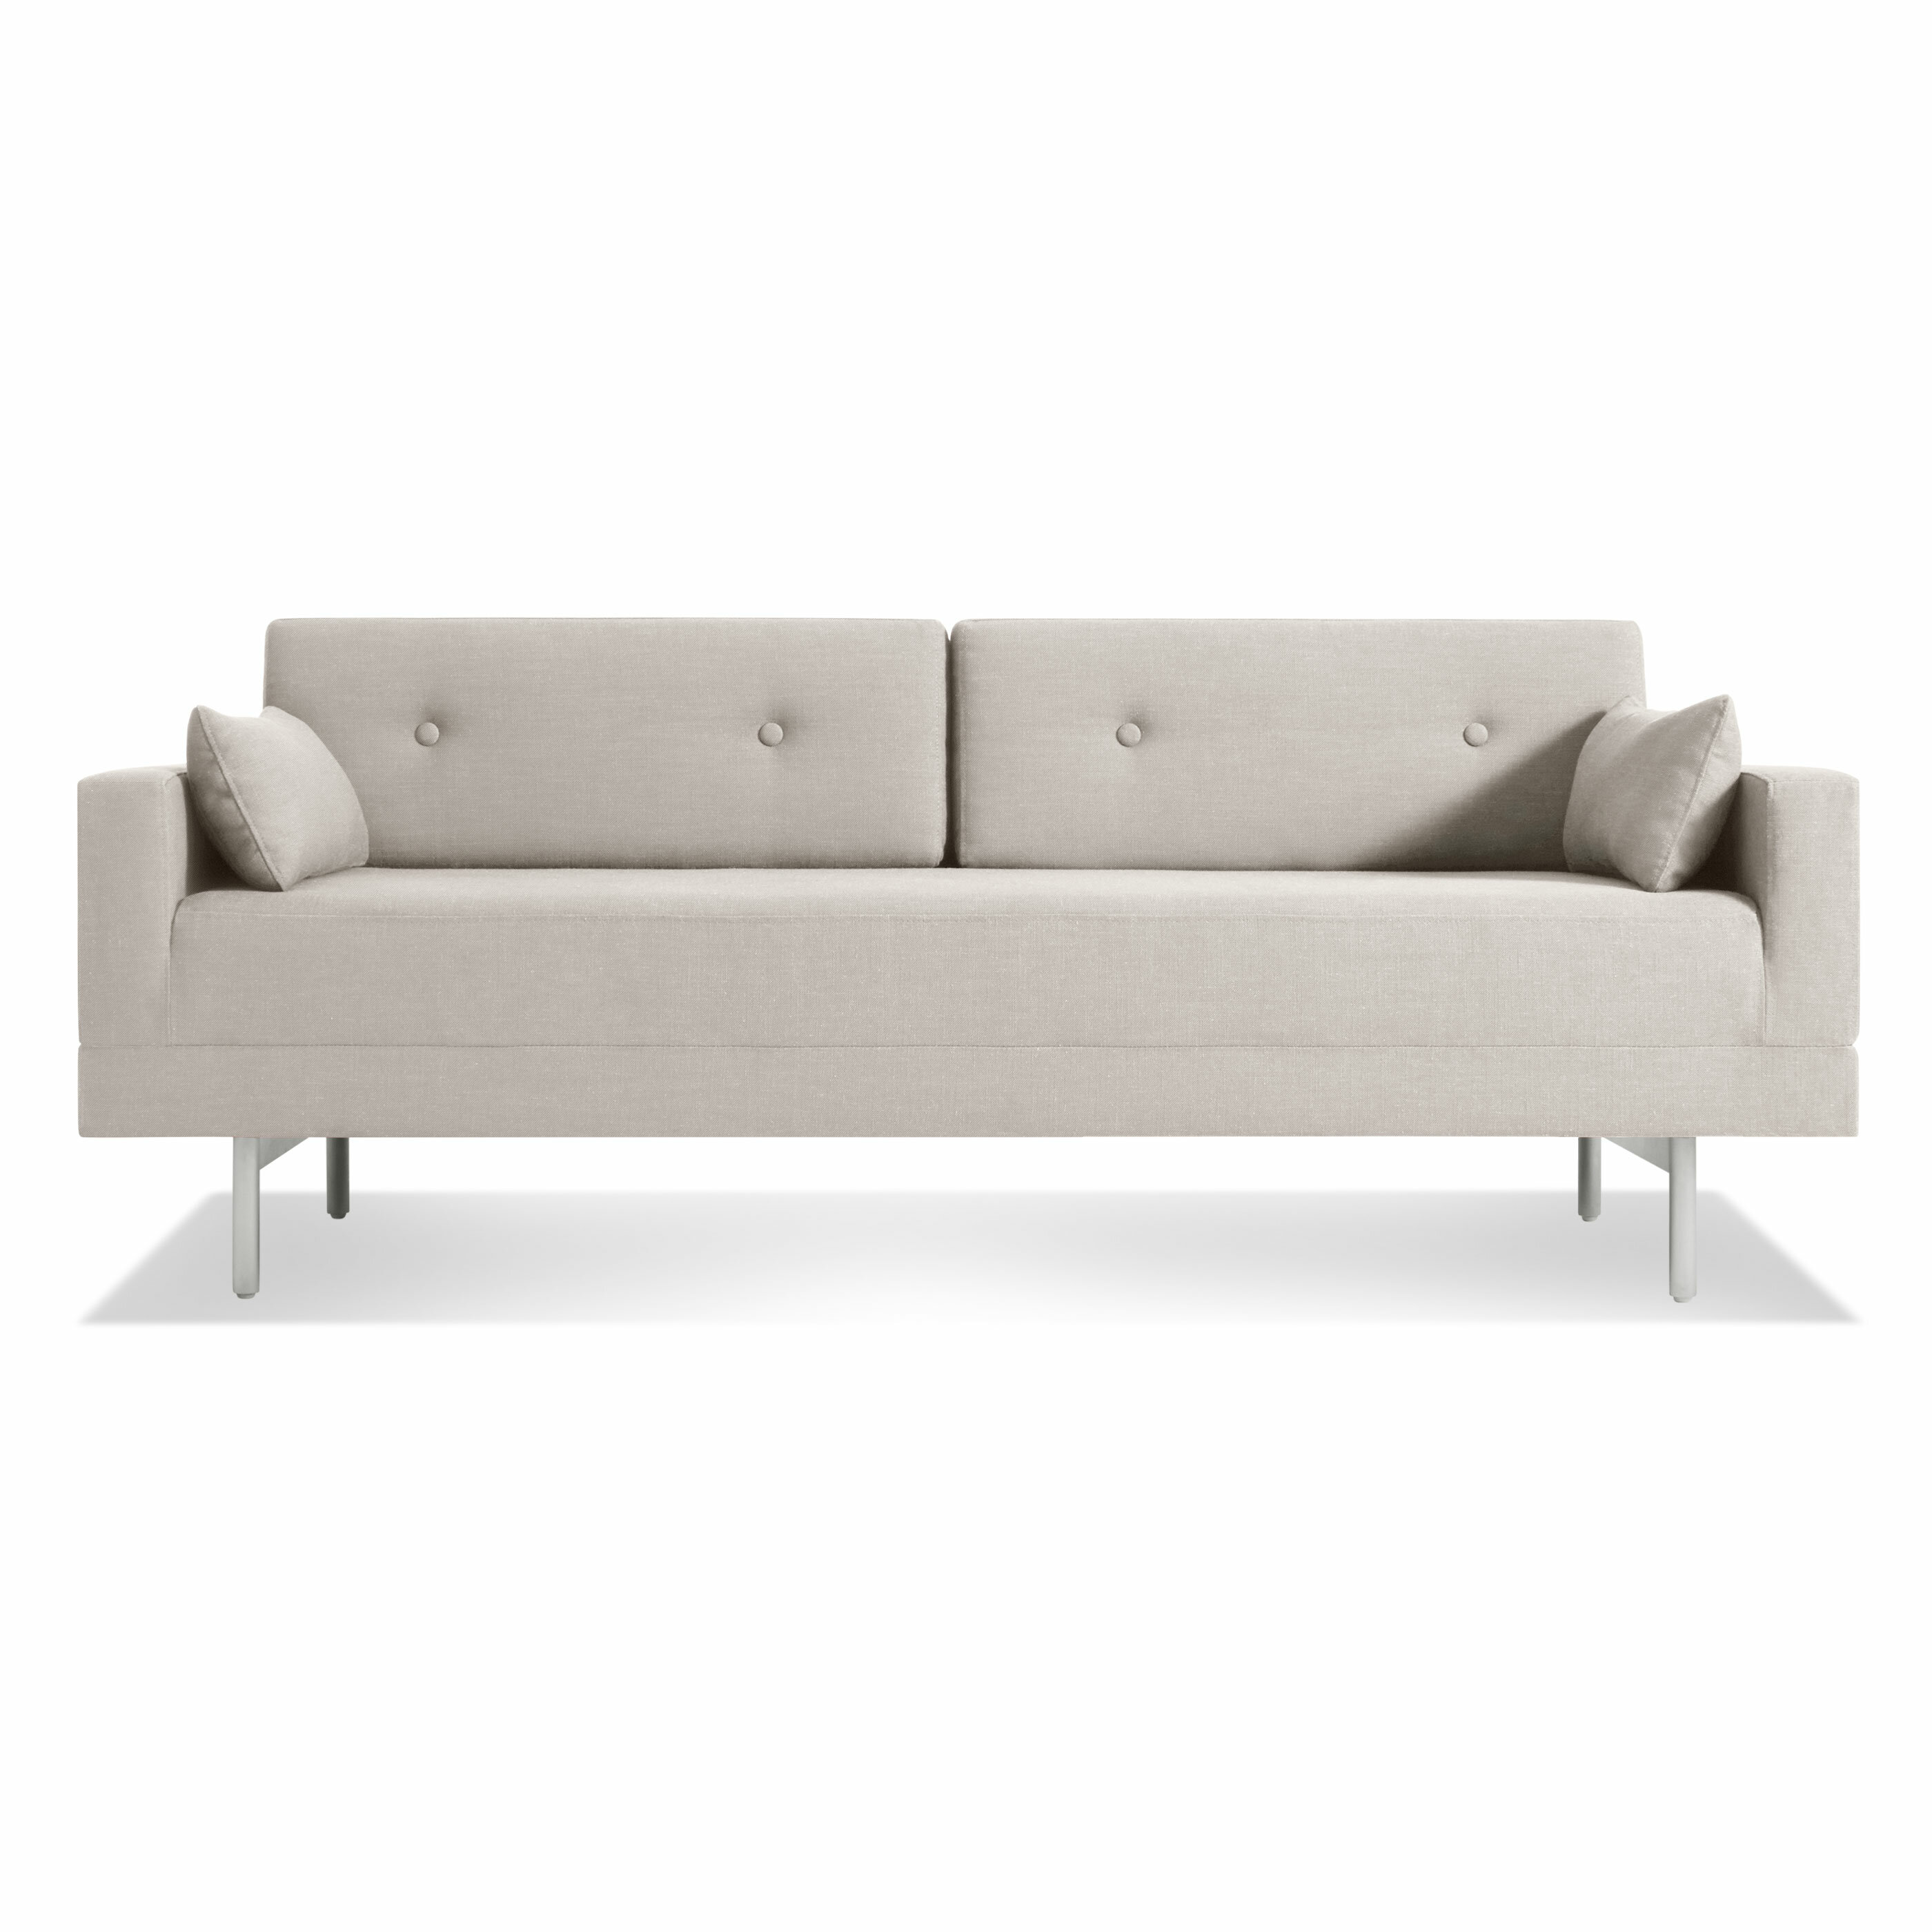 Sleeper Sofa.Blu Dot One Night Stand Sleeper Sofa